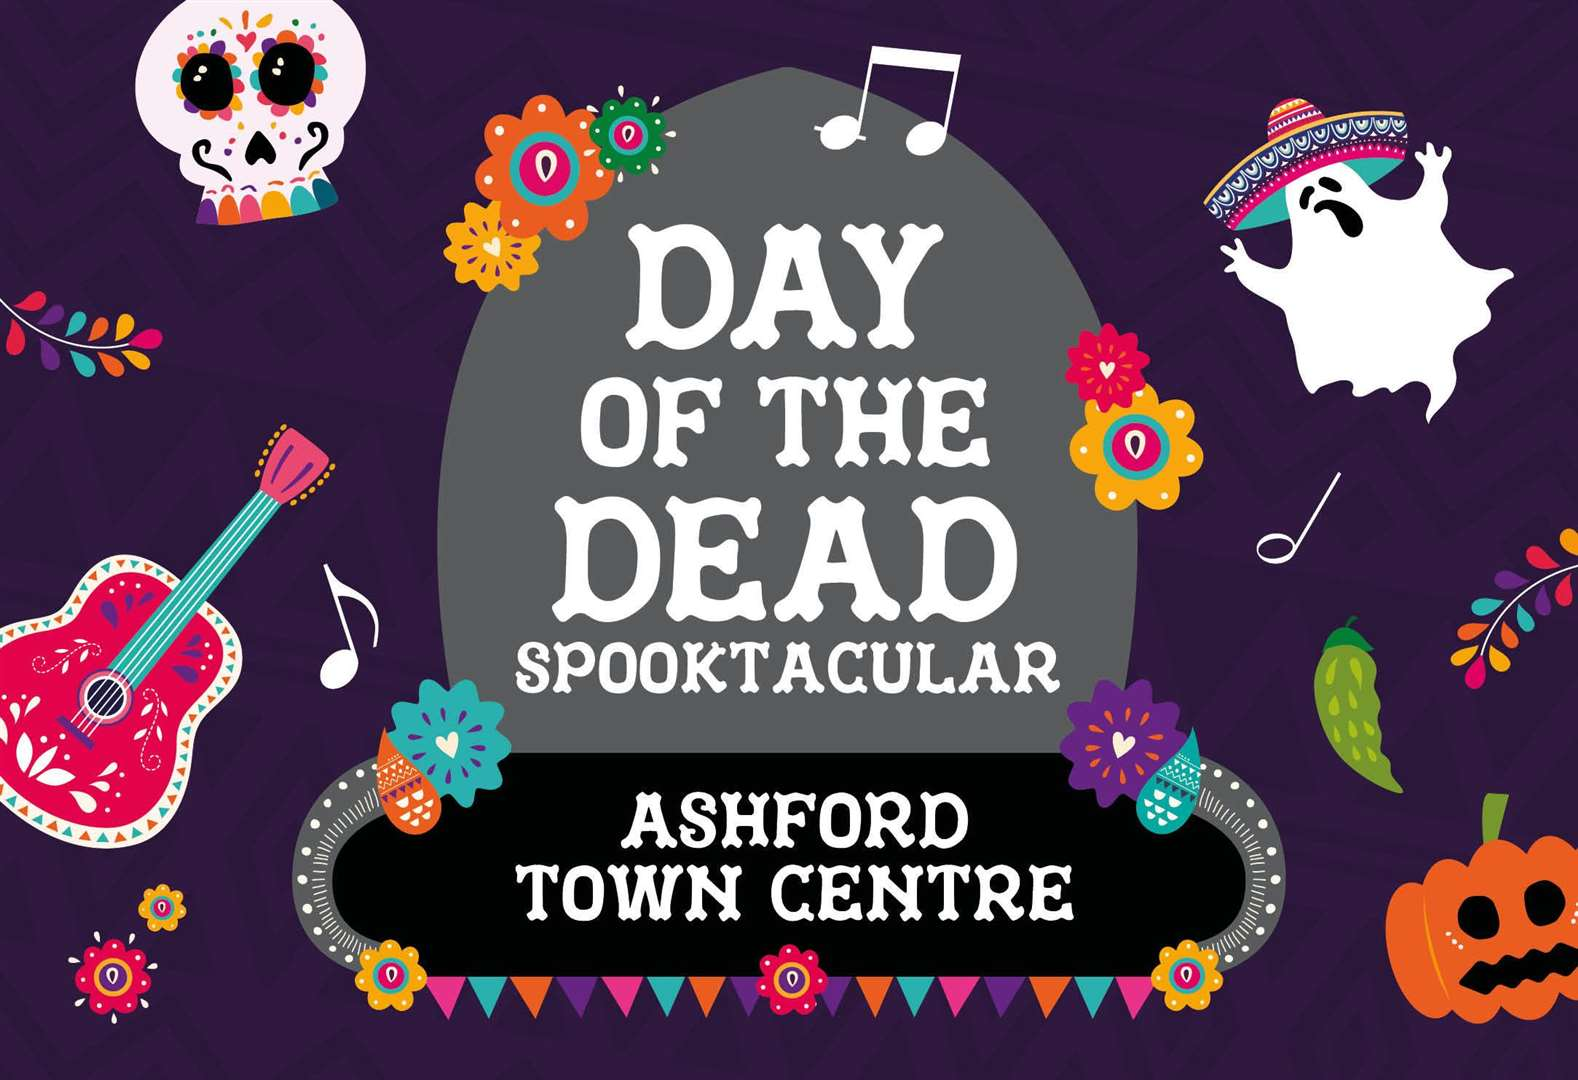 Beware! The Day of the Dead beckons